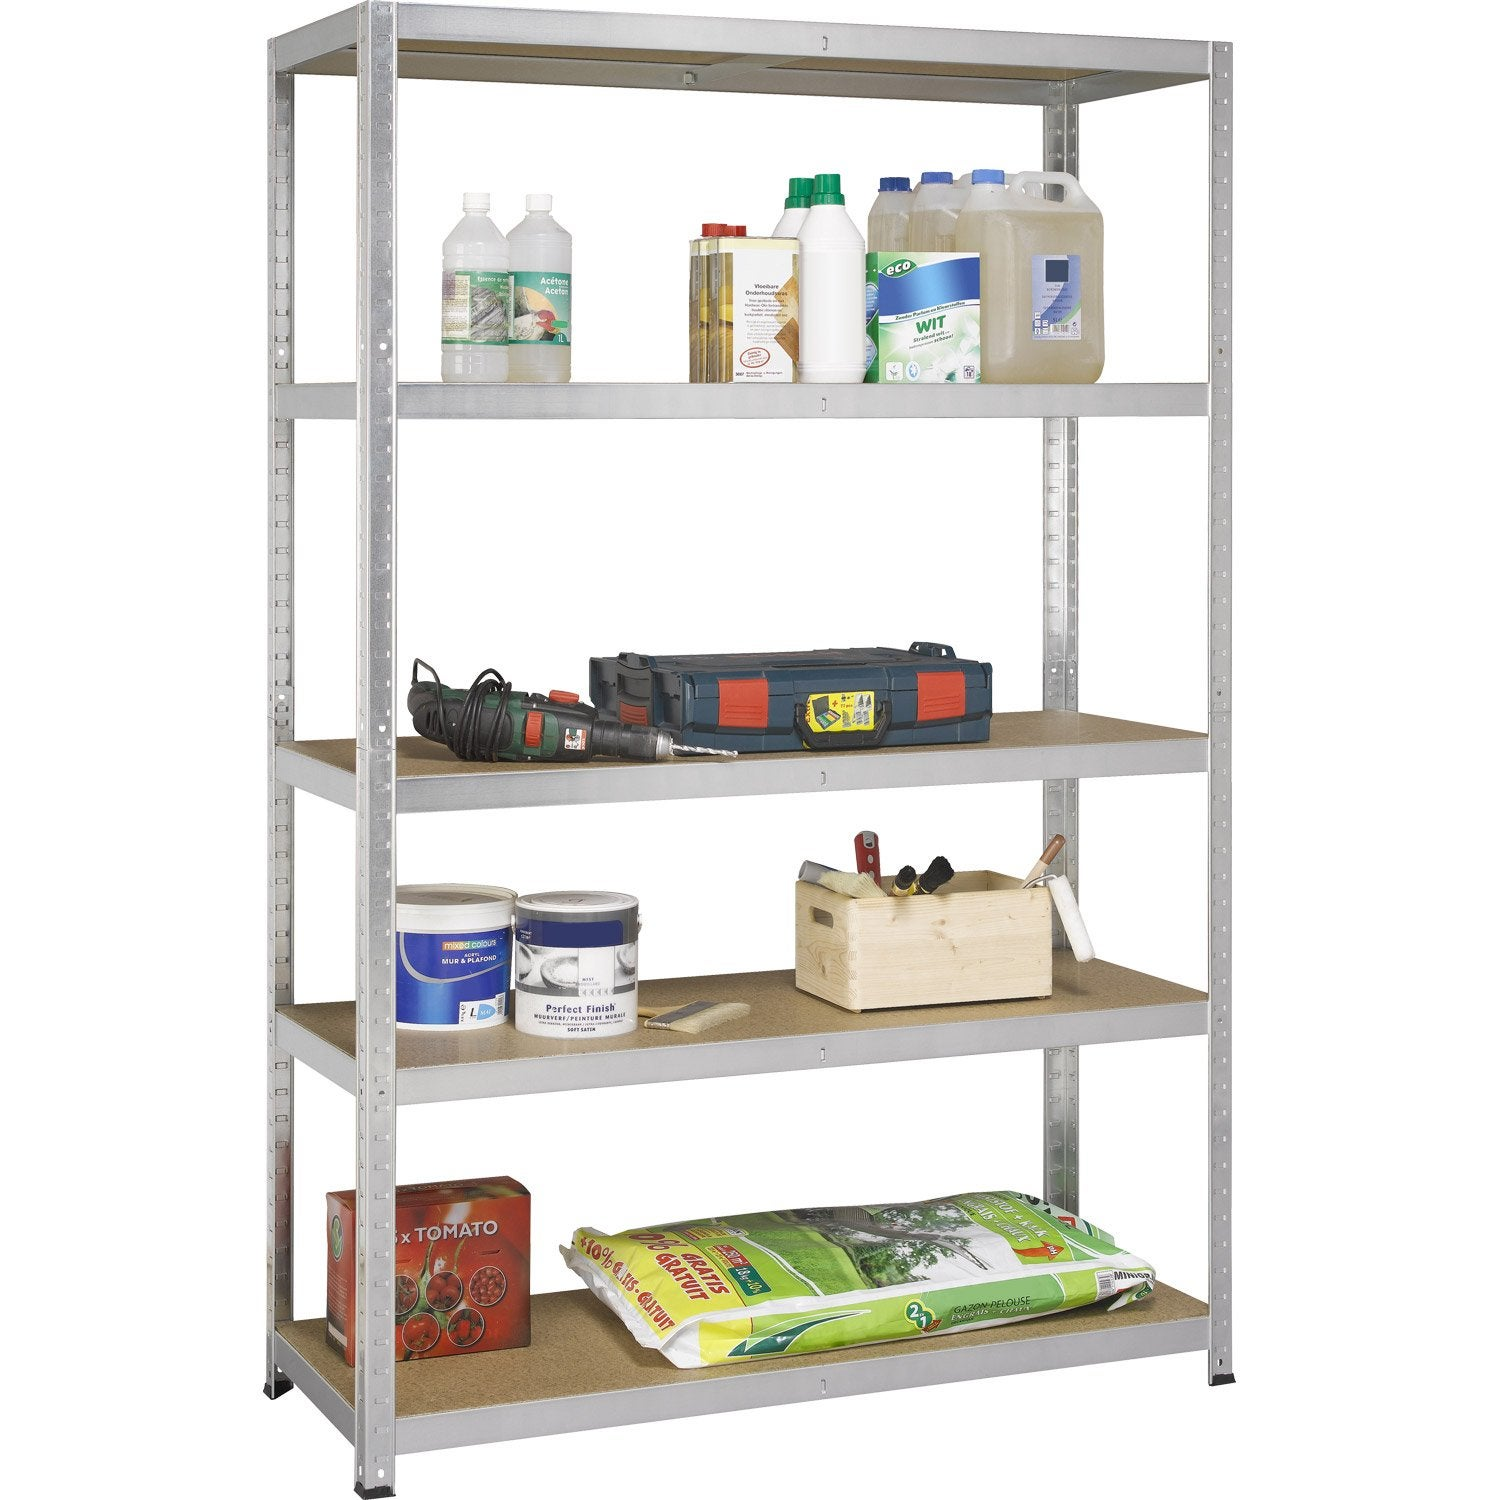 Etag re acier avasco strong 5 tablettes gris x x cm lero - Etagere garage leroy merlin ...